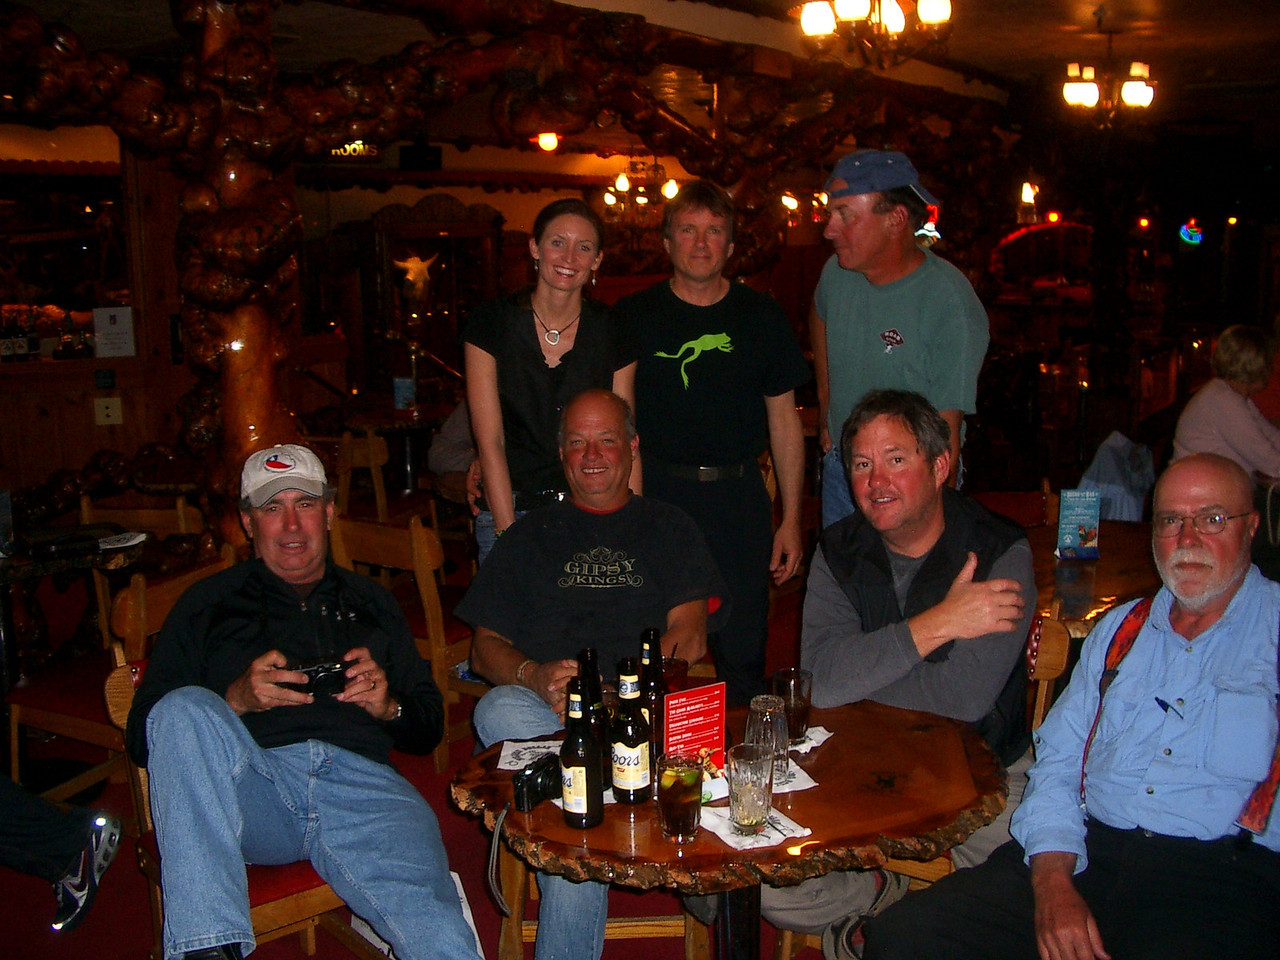 Met the Texas posse again in Jackson Hole and spent the night drinking and telling jokes. Also met Scott from Long Island, although he wasn't on his GS this trip.<br /> <br /> Great guys! From the left: Donovan, brothers Kyle and Keller, and James, back row: server Jennifer (I think), me and Scott from Long Island NY.<br /> <br /> They seemed to have a real fascination with hearing newfie jokes so I told a few.